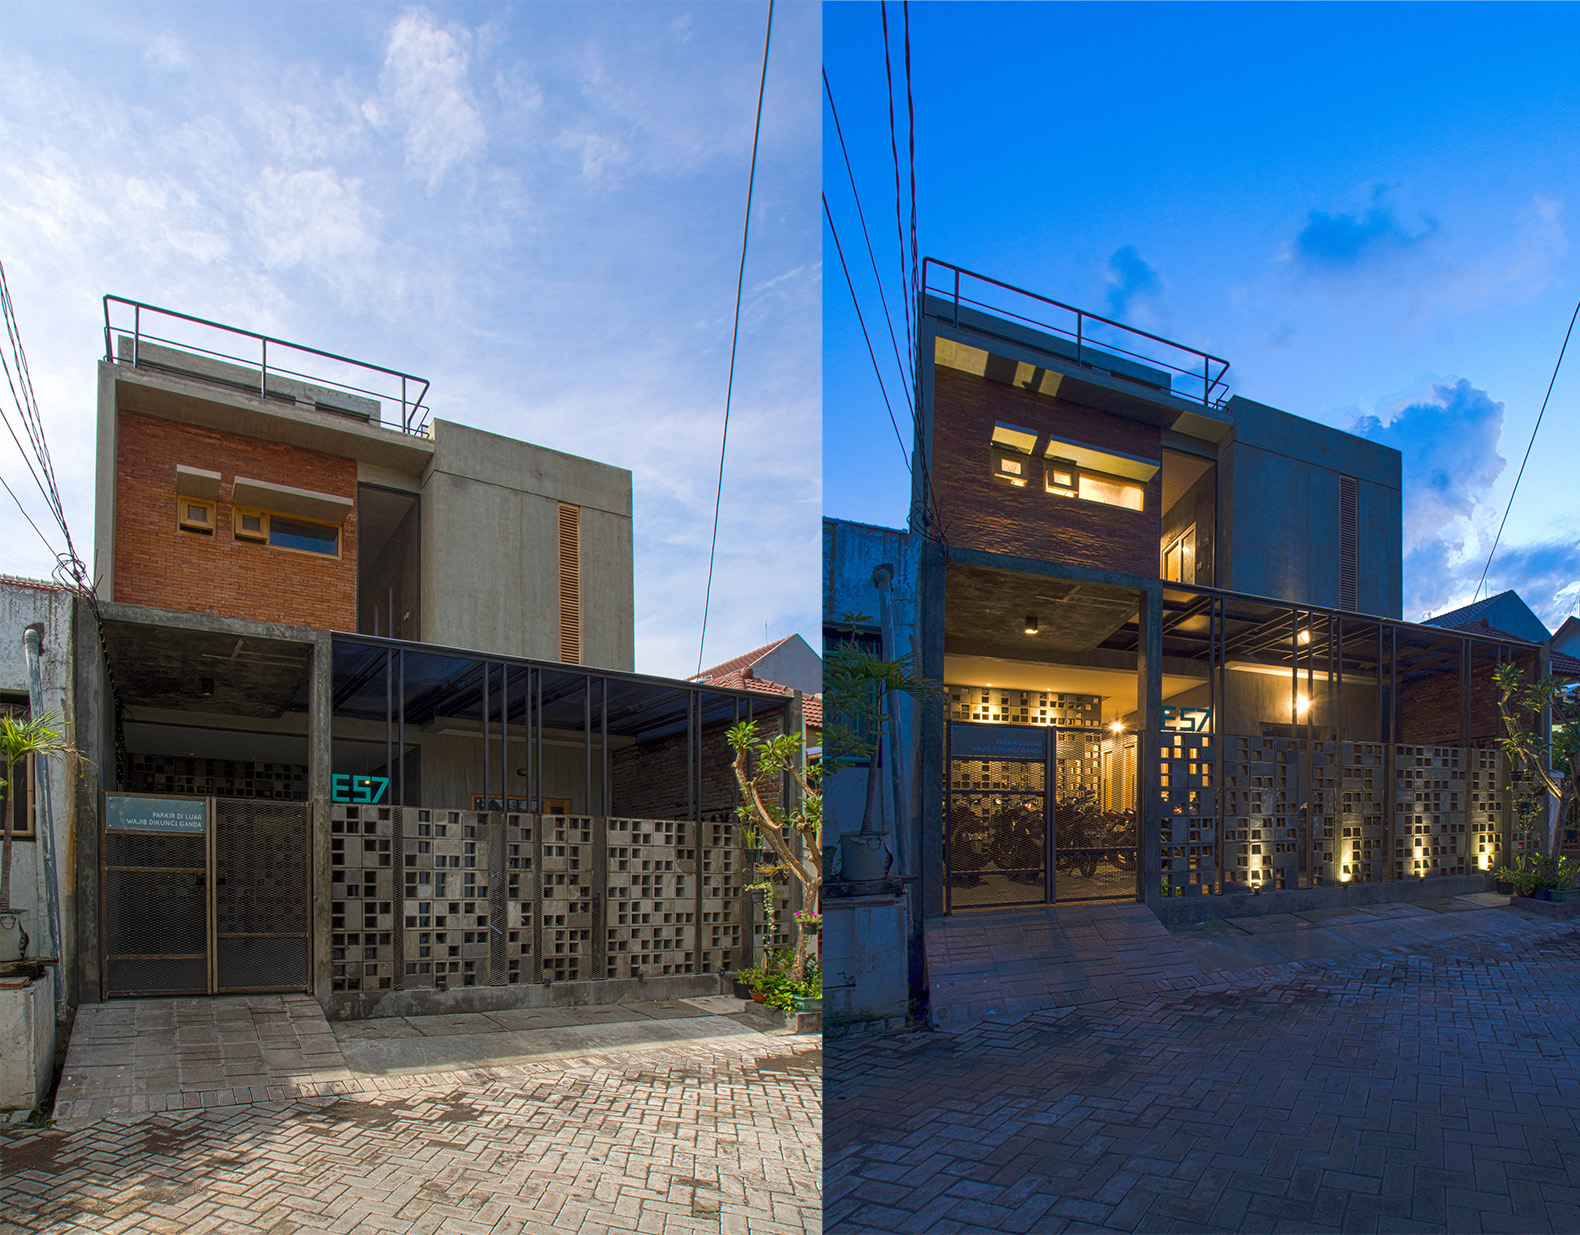 Maison Cool Bioclimatic Boarding House Keeps Naturally Cool In Tropical Indonesia